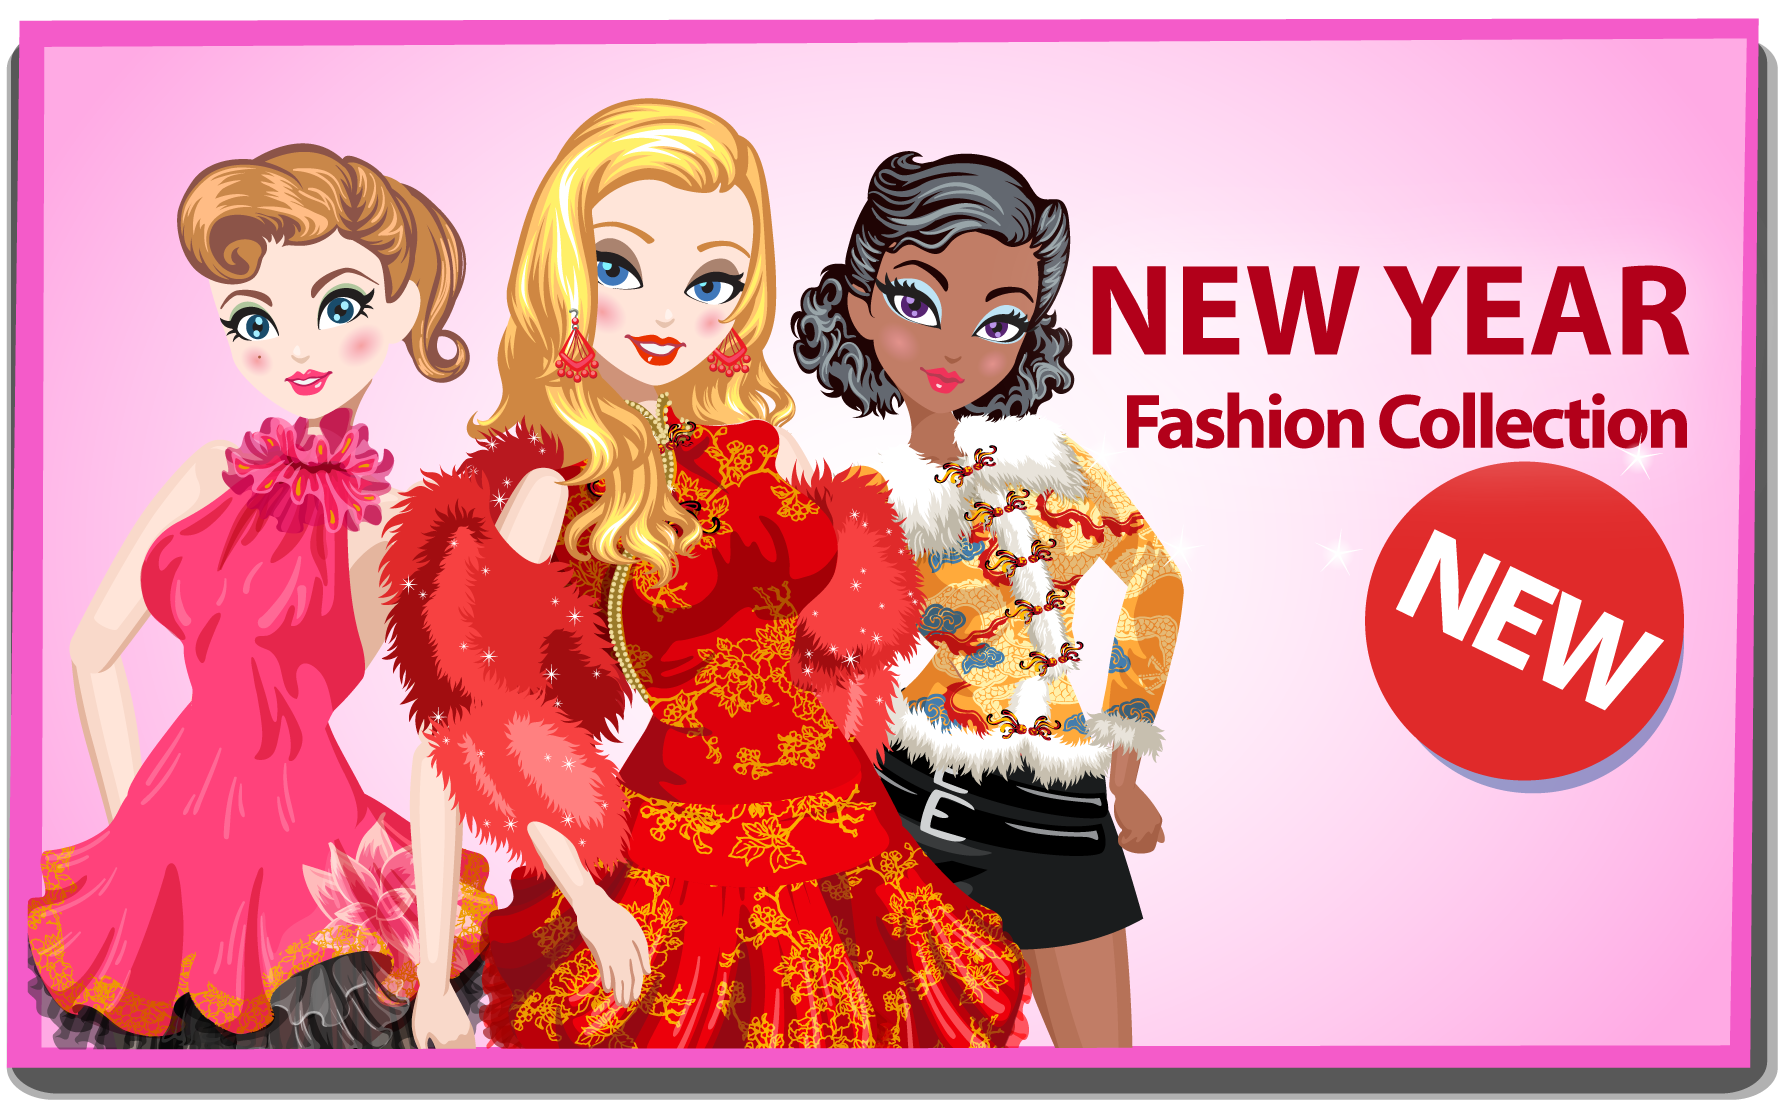 Star Girl Welcome The Lunar New Year In Style With Star Girl S New Year Fashion Collection